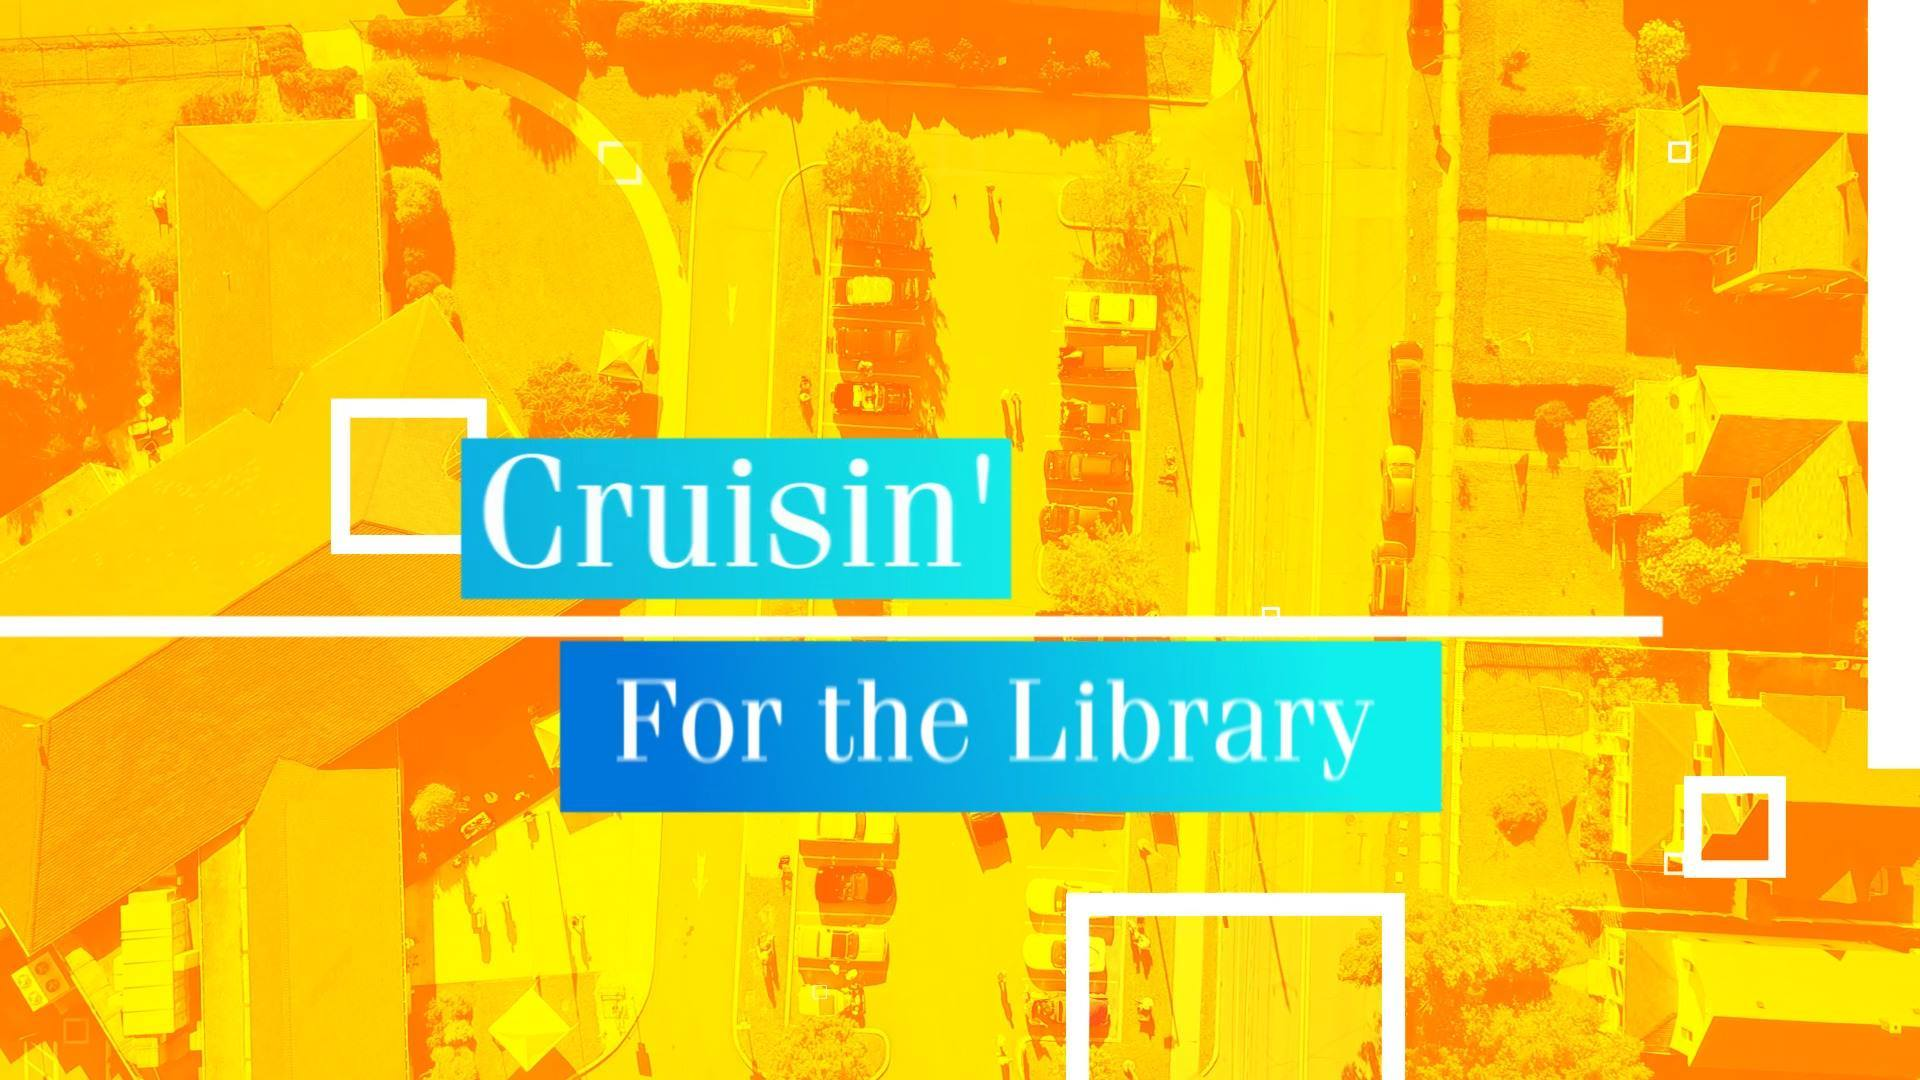 Crusin' For the Library 2018